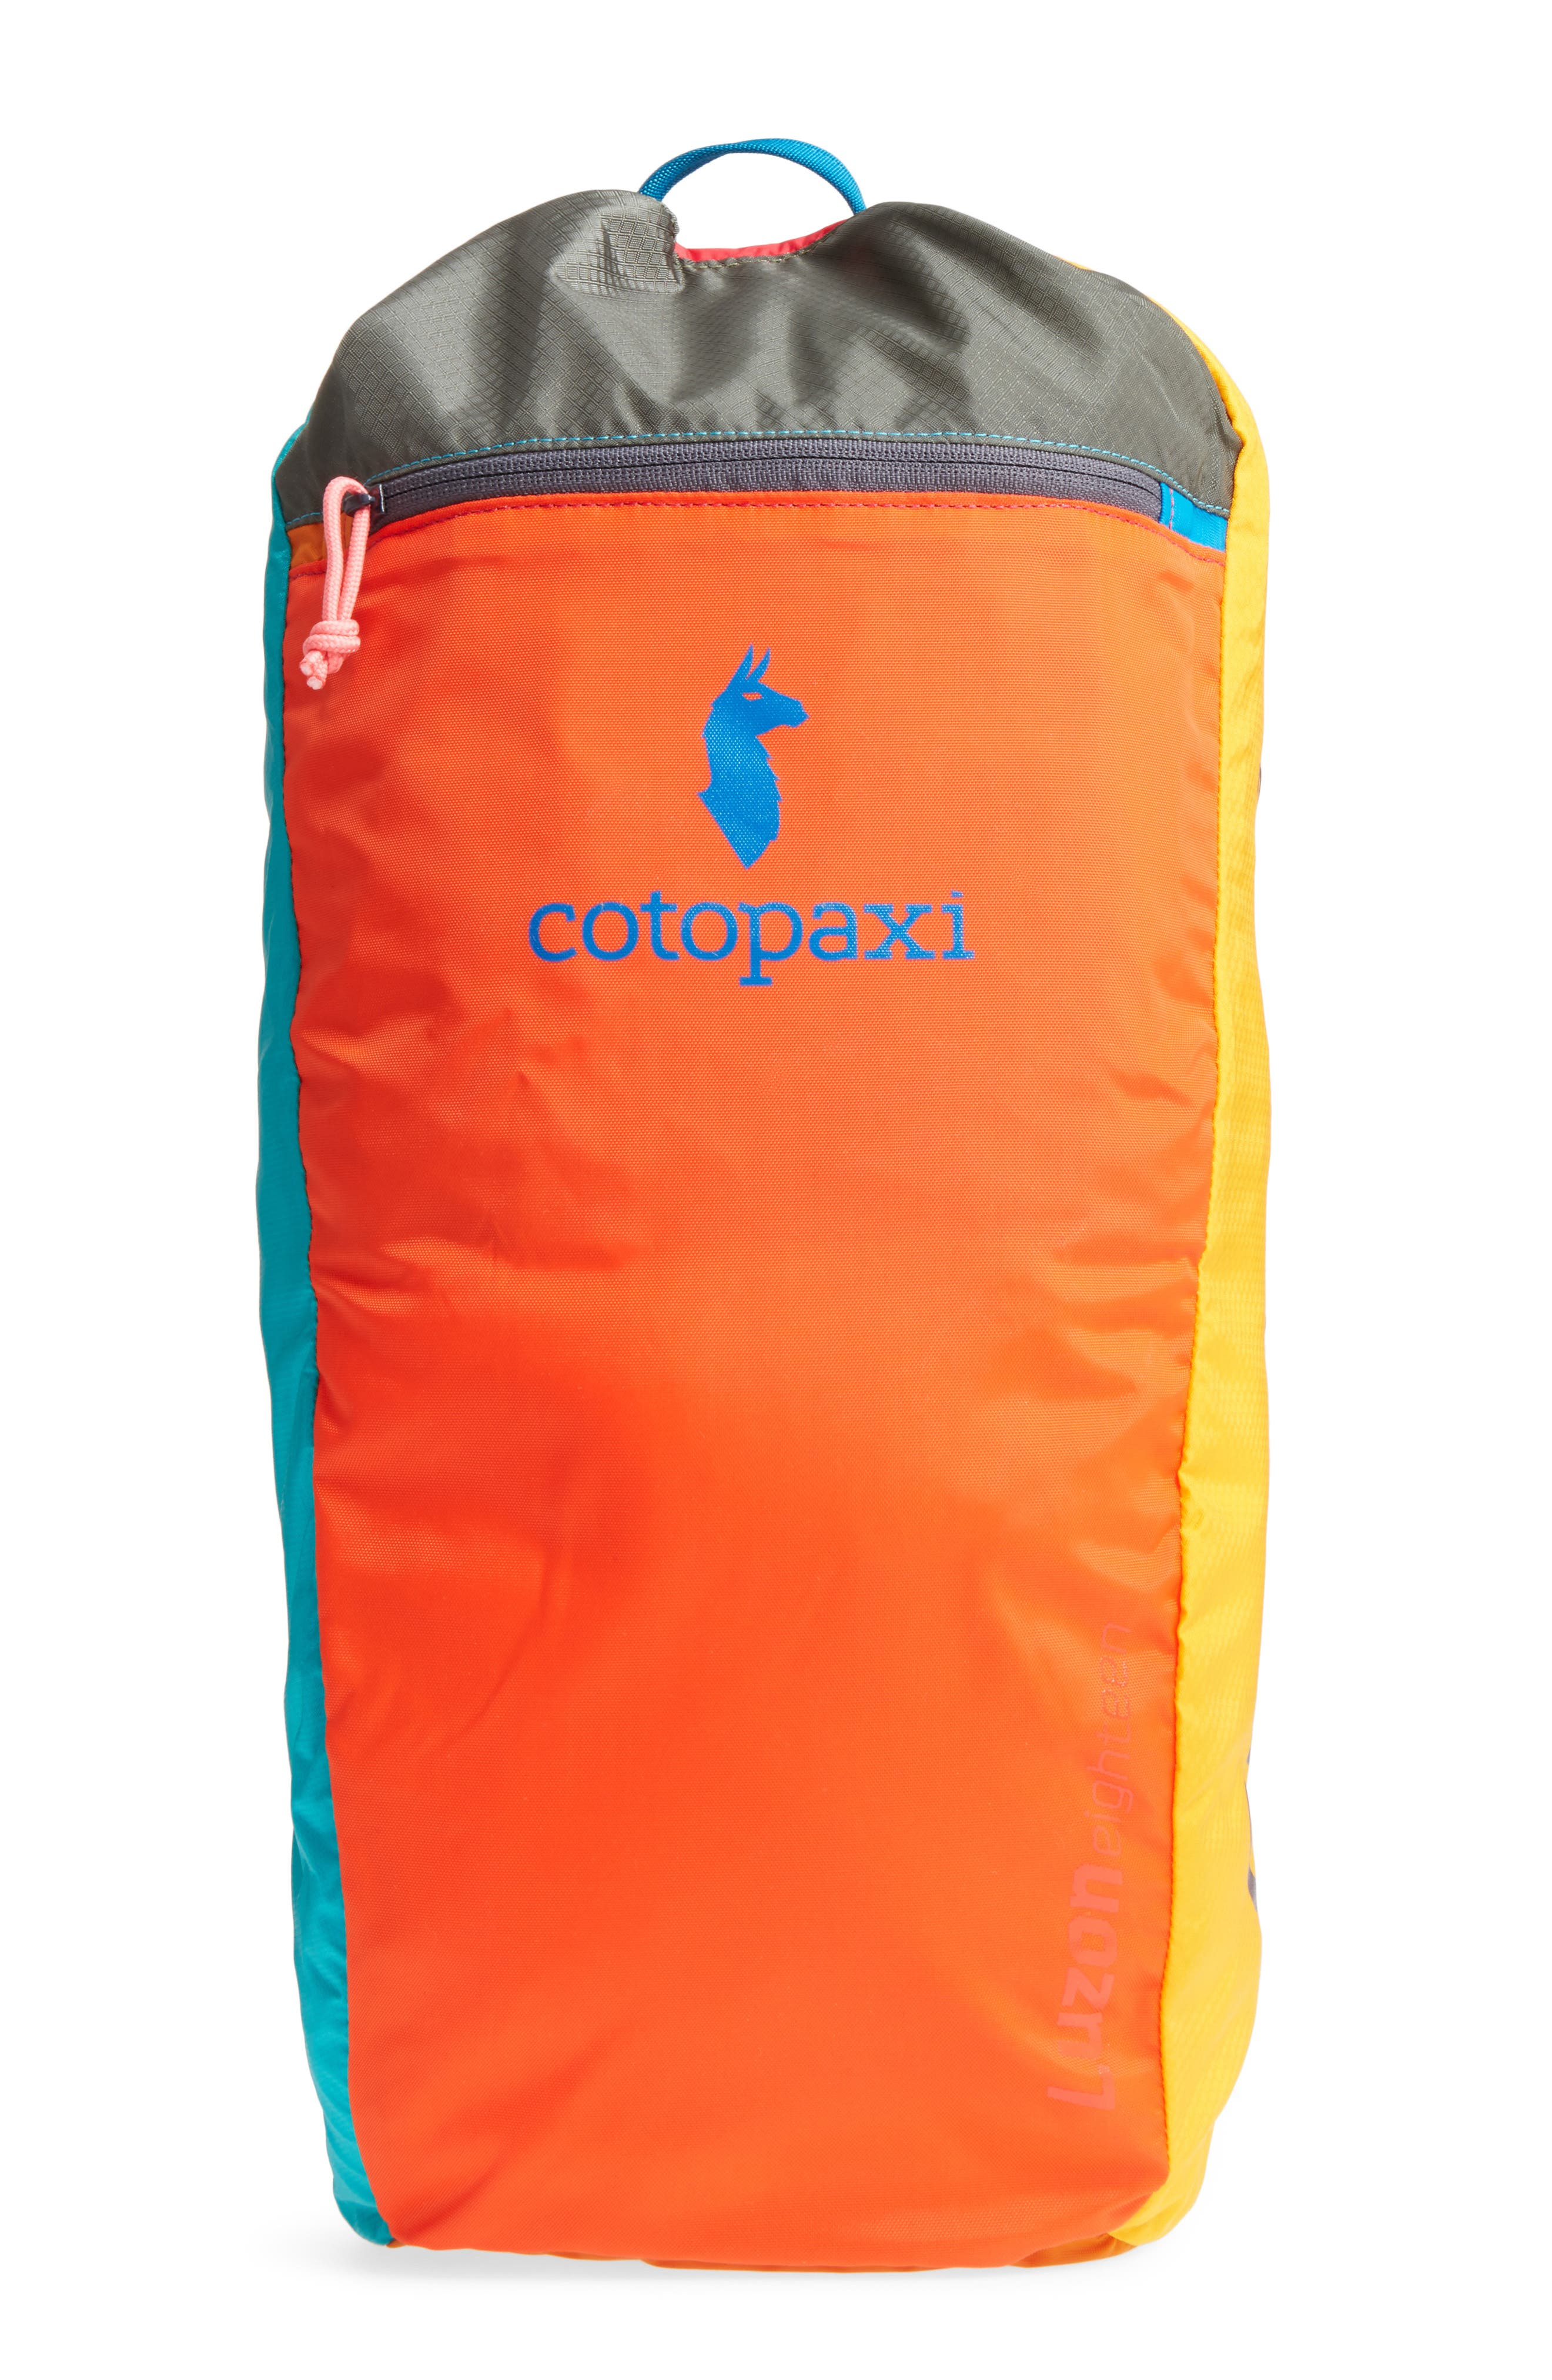 Alternate Image 1 Selected - Cotopaxi Luzon Del Día One of a Kind Ripstop Nylon Daypack (18L)